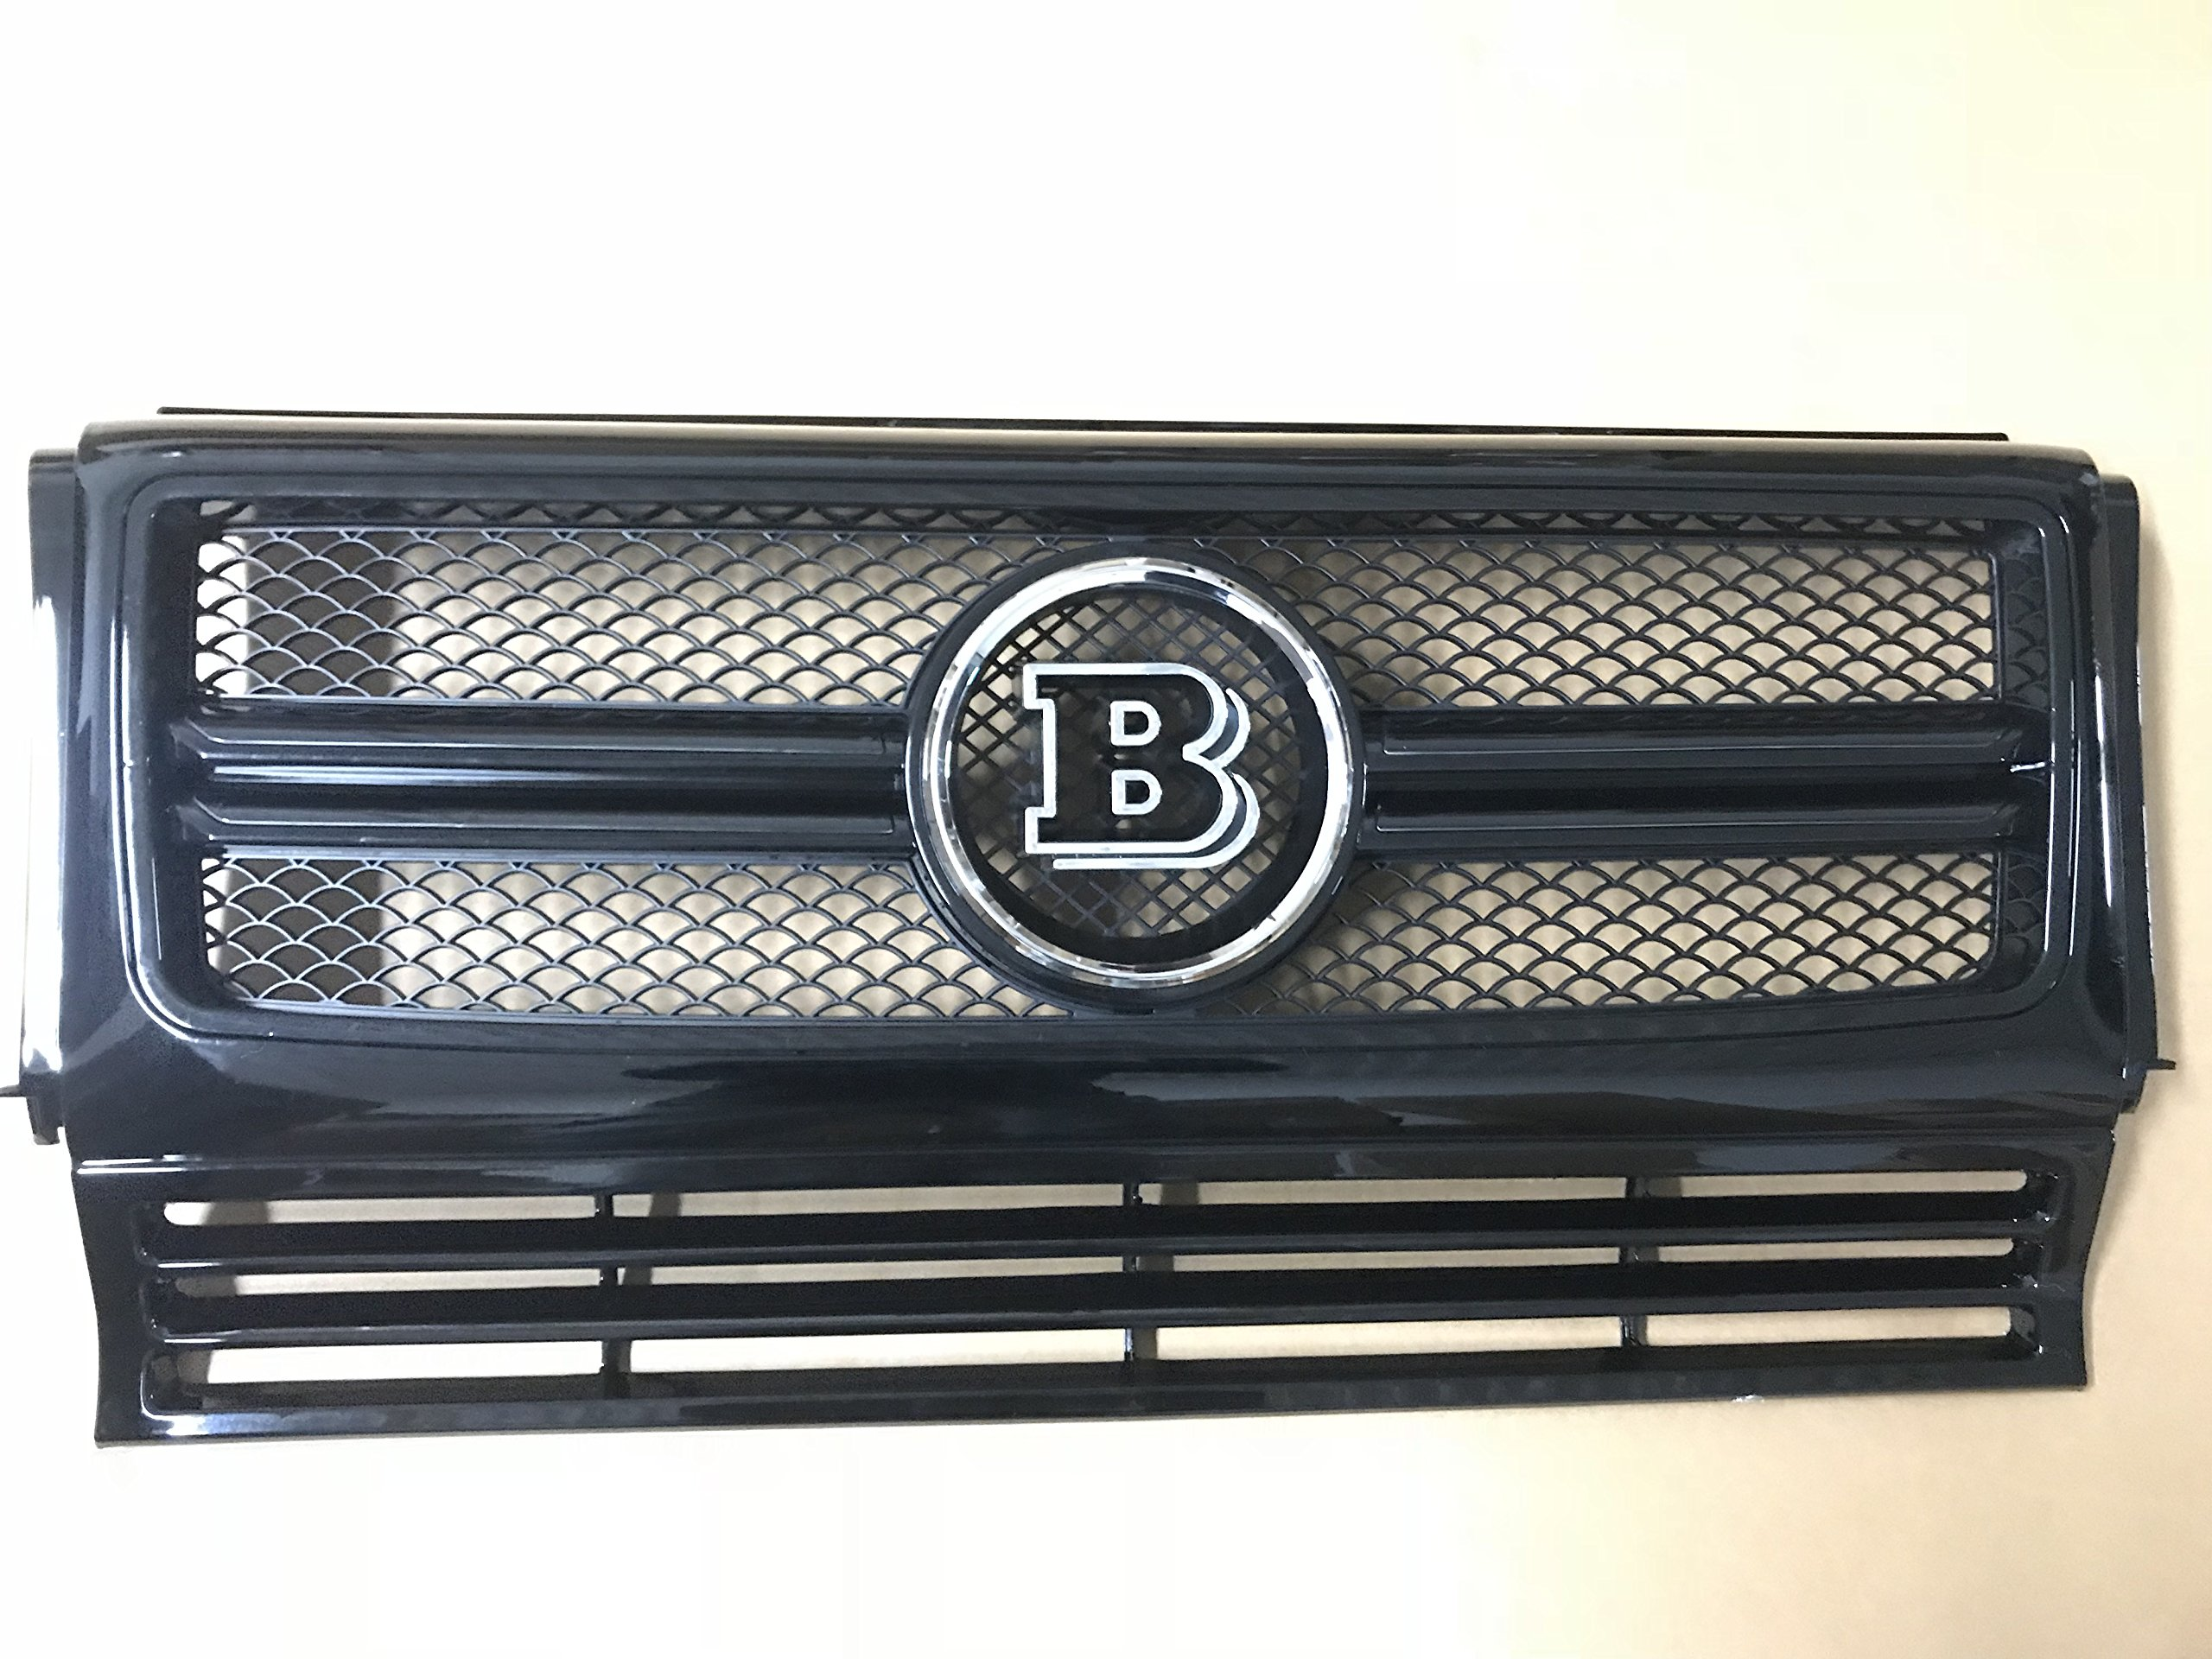 ALL BLACK G-Wagon W463 BRABUS-Style G65 W463 Conversion Grille Complete Fit For Mercedes-benz G500 G550 G63 Grille (Chrome B) by Conversion Grille Replacement (Image #1)